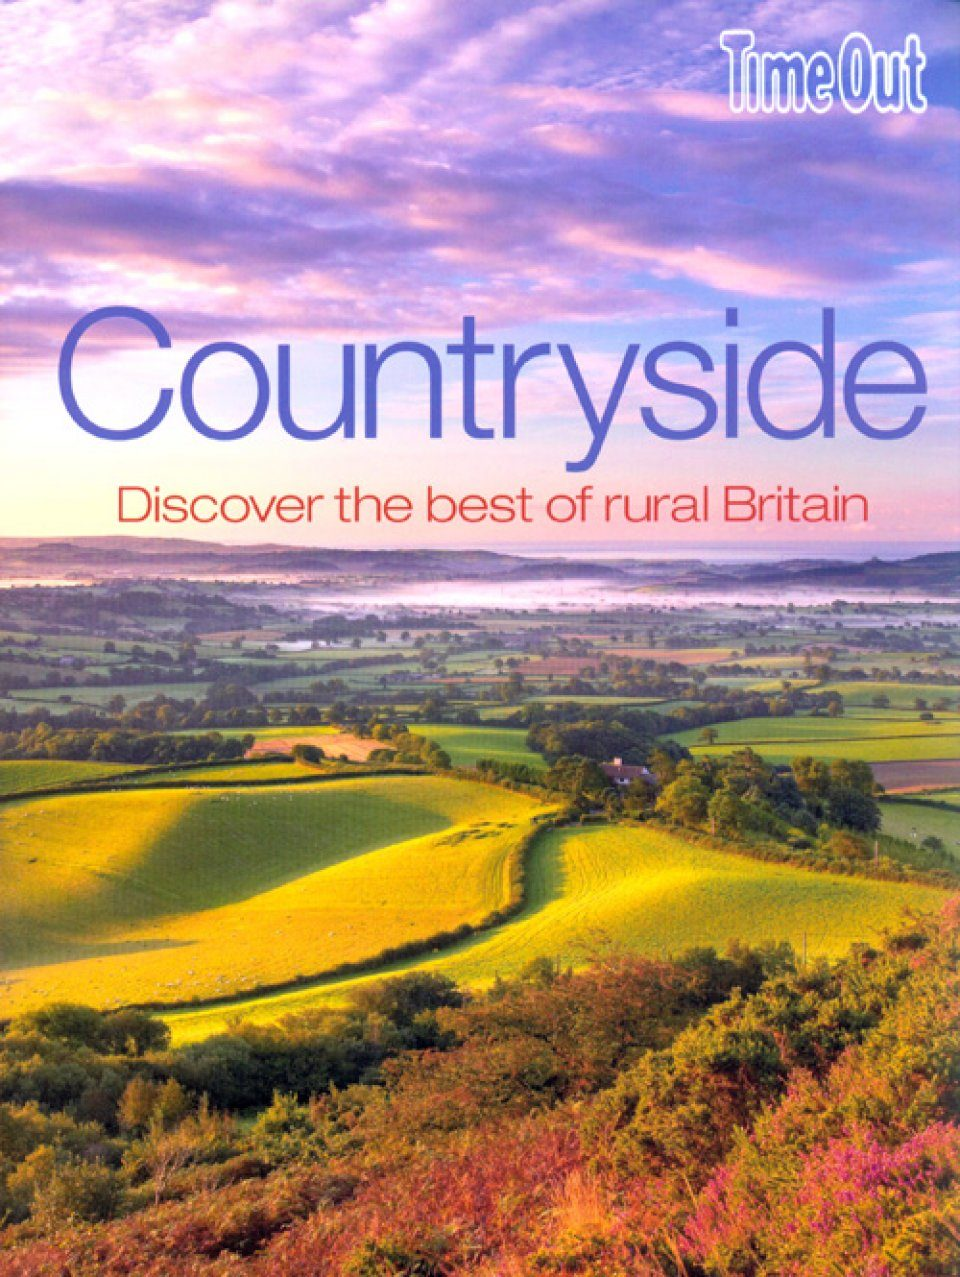 Countryside: Discover the Best of Rural Britain